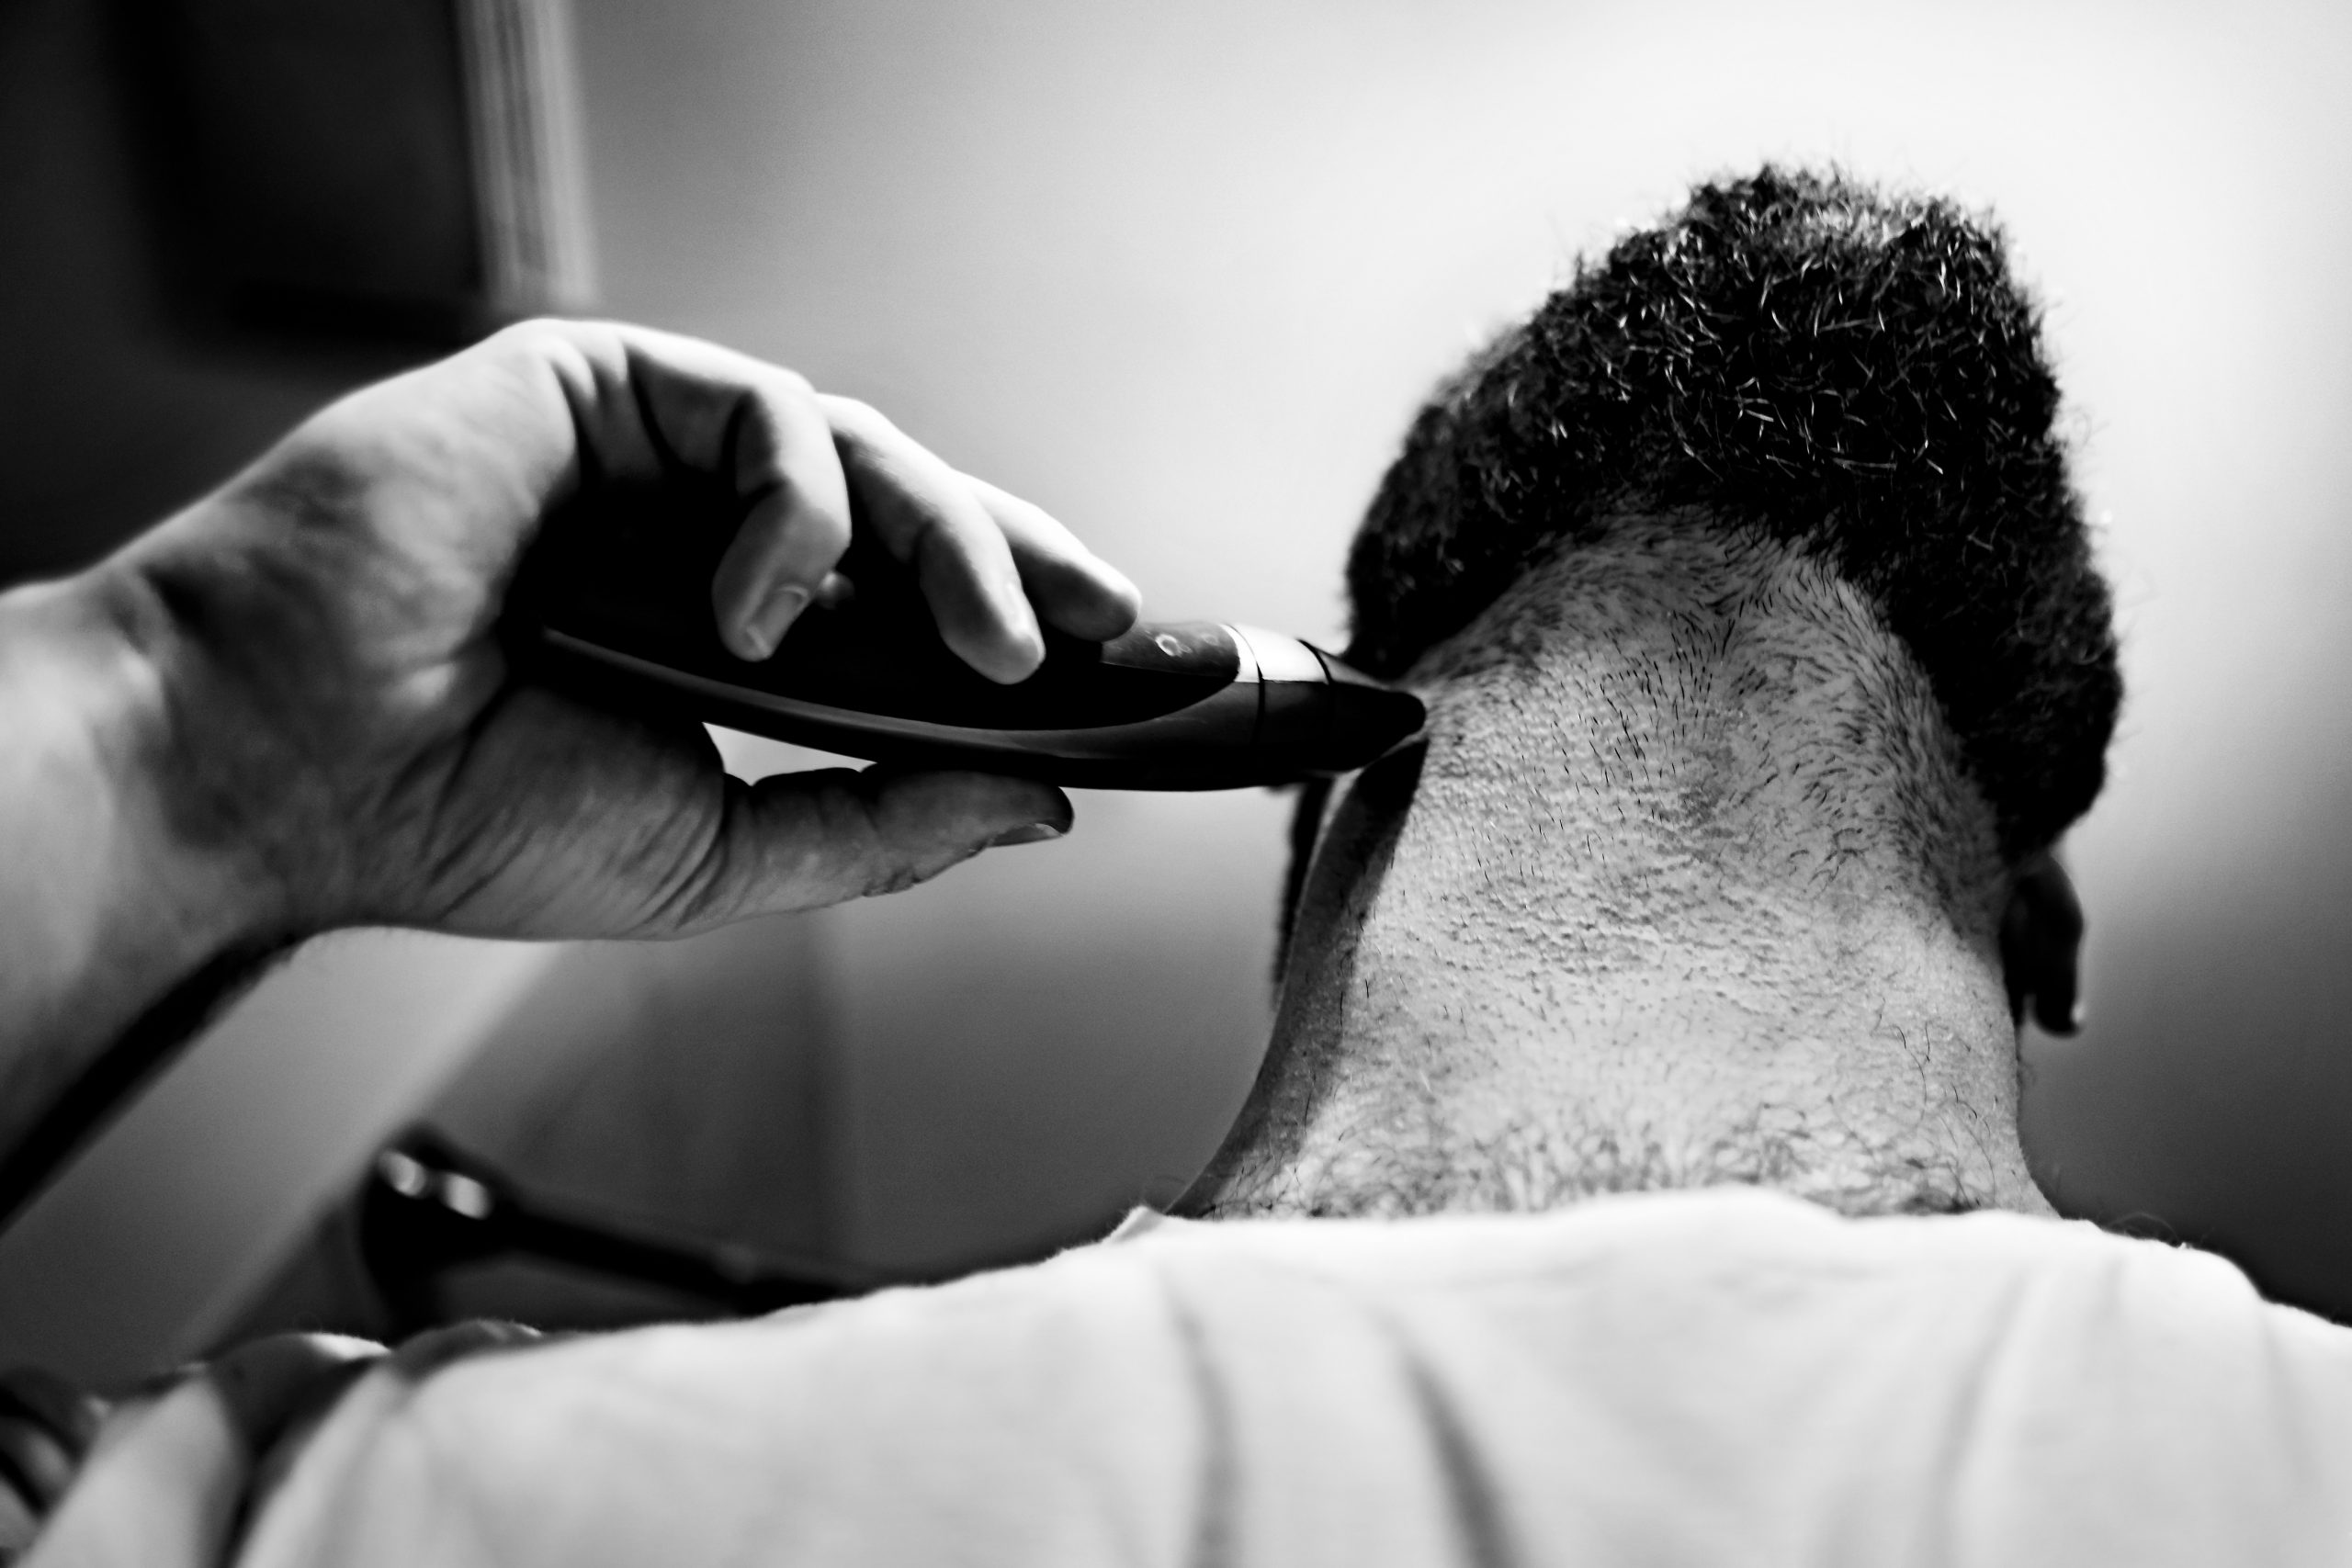 A man trims his beard.